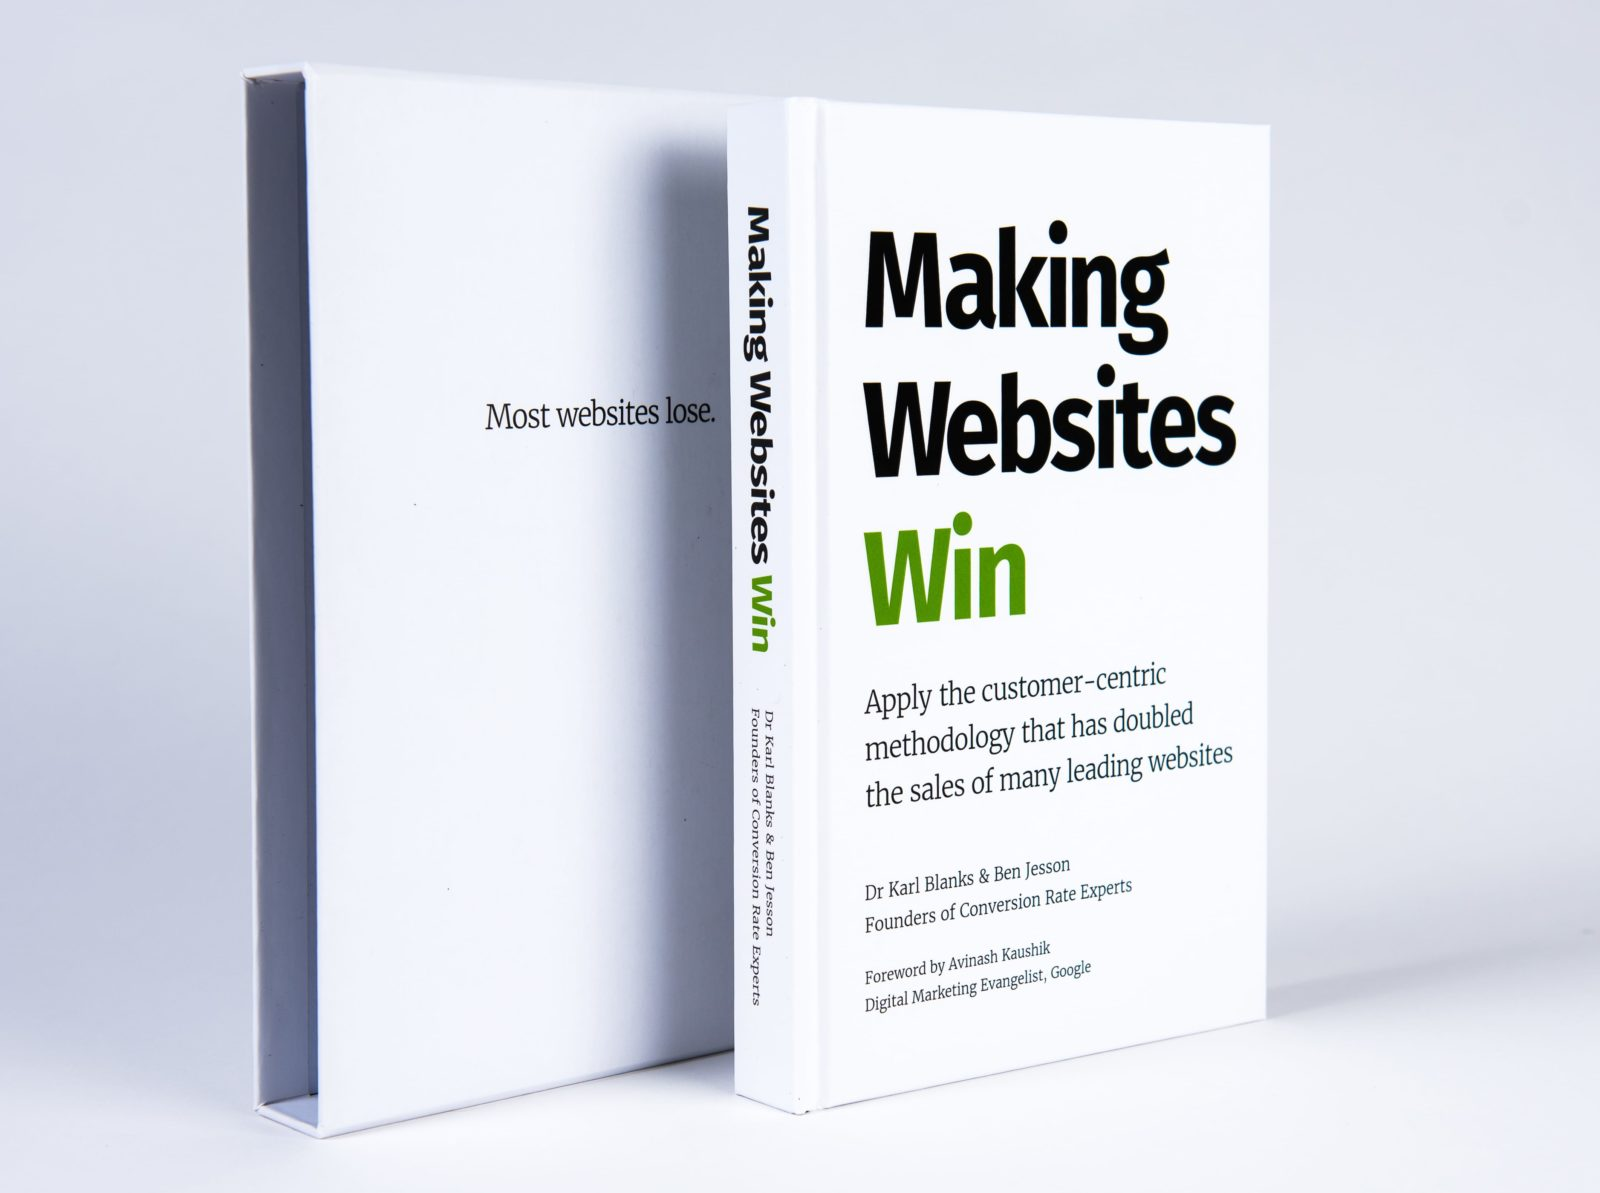 making-websites-win-by-dr-karl-blanks-and-ben-jesson